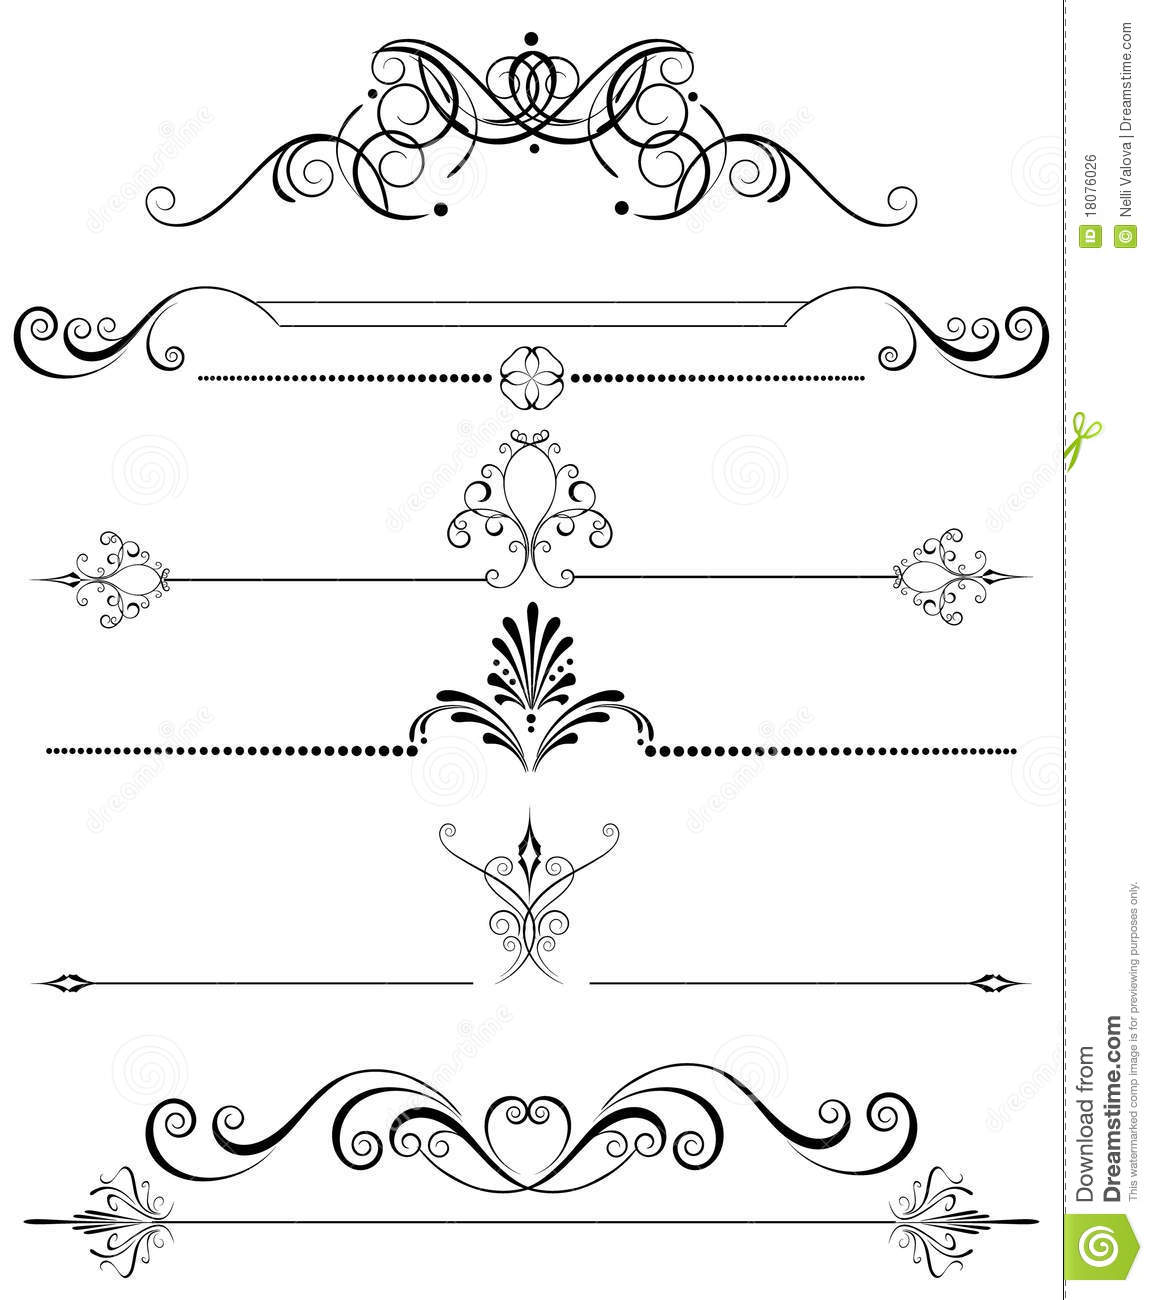 Decoration for the page stock vector illustration of for Decoration page